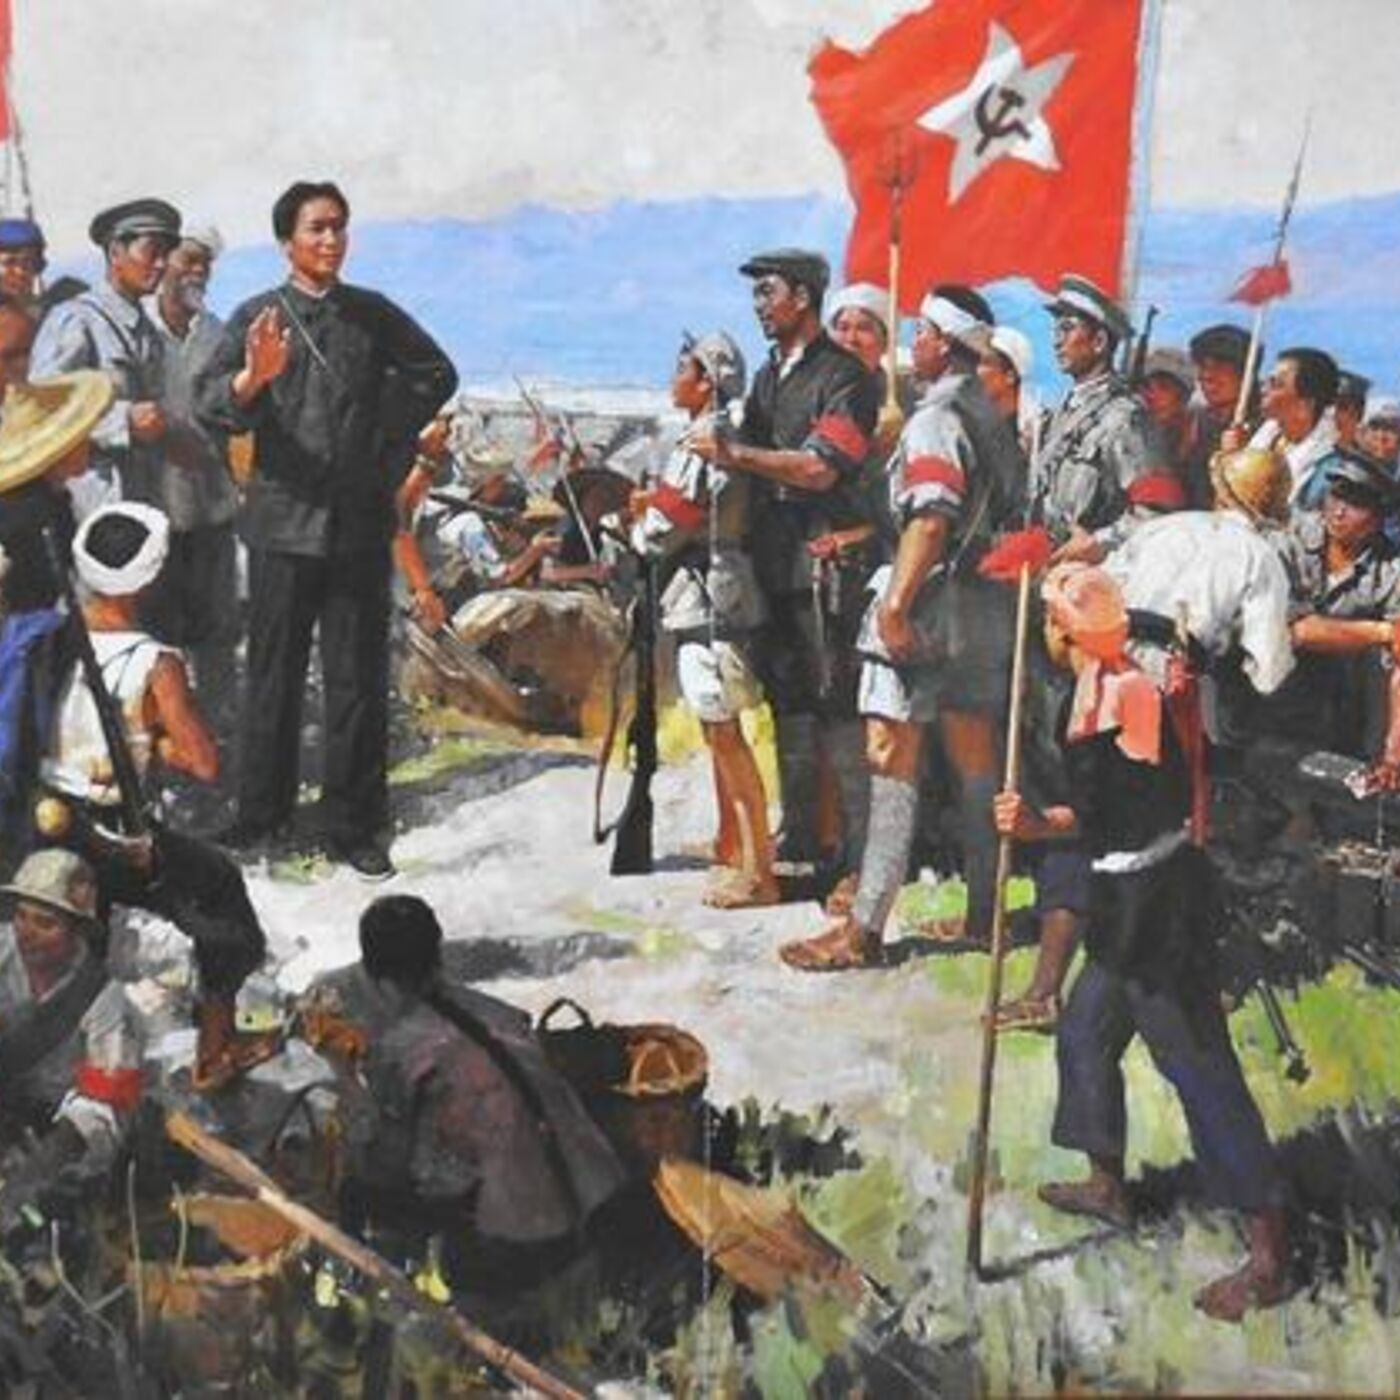 Two Incursions, One Betrayal, and Six Points for Attention: The Red Army in Chaling and Suichuan (October 1927 to January 1928)